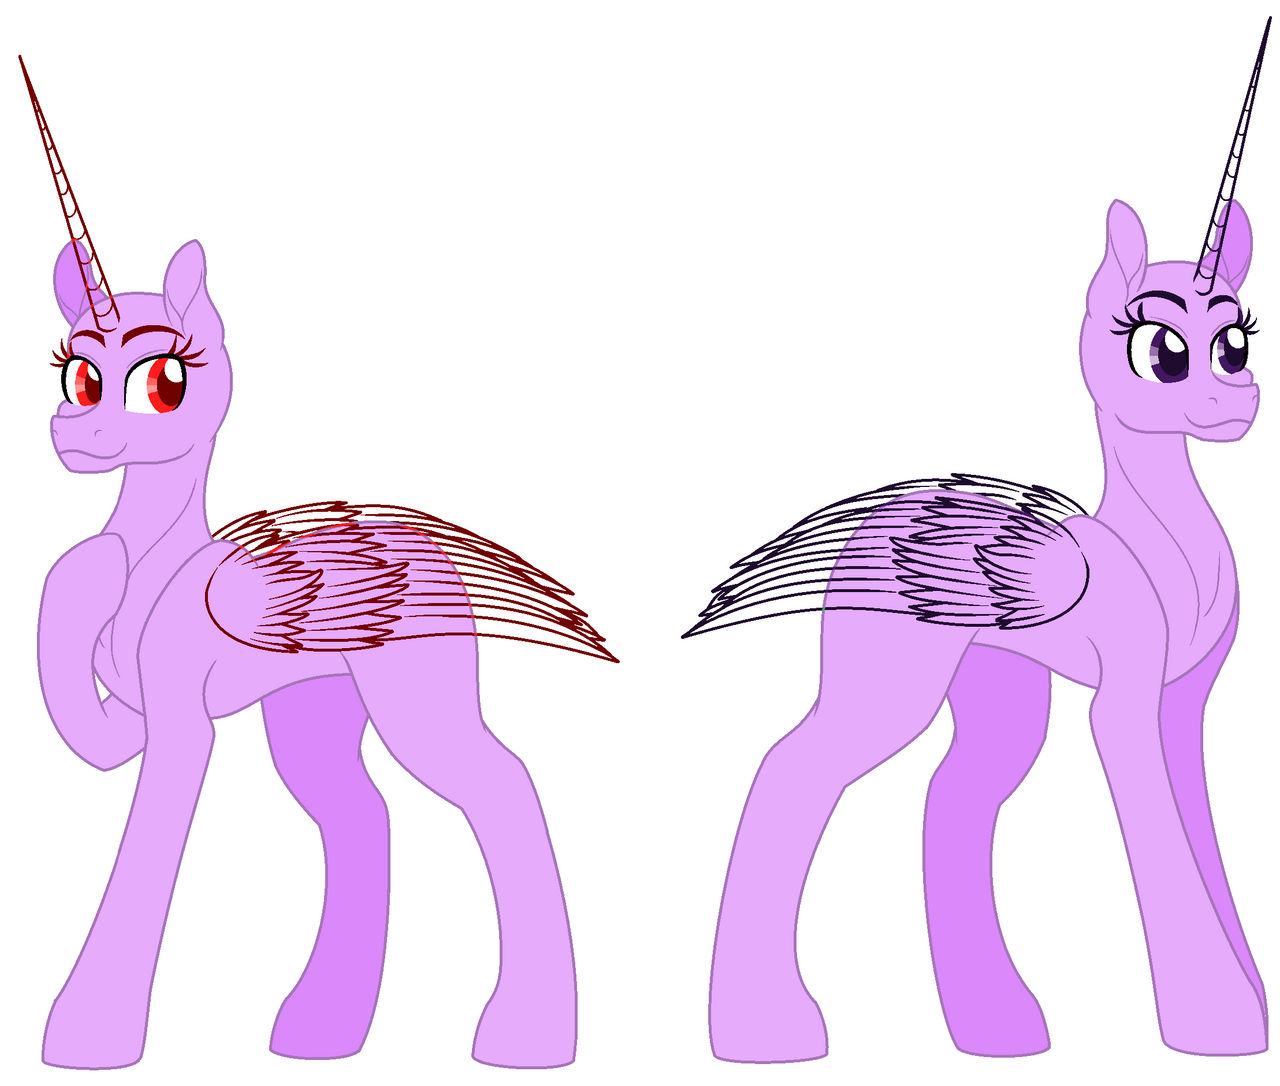 mlp base 30 - Hermanas?